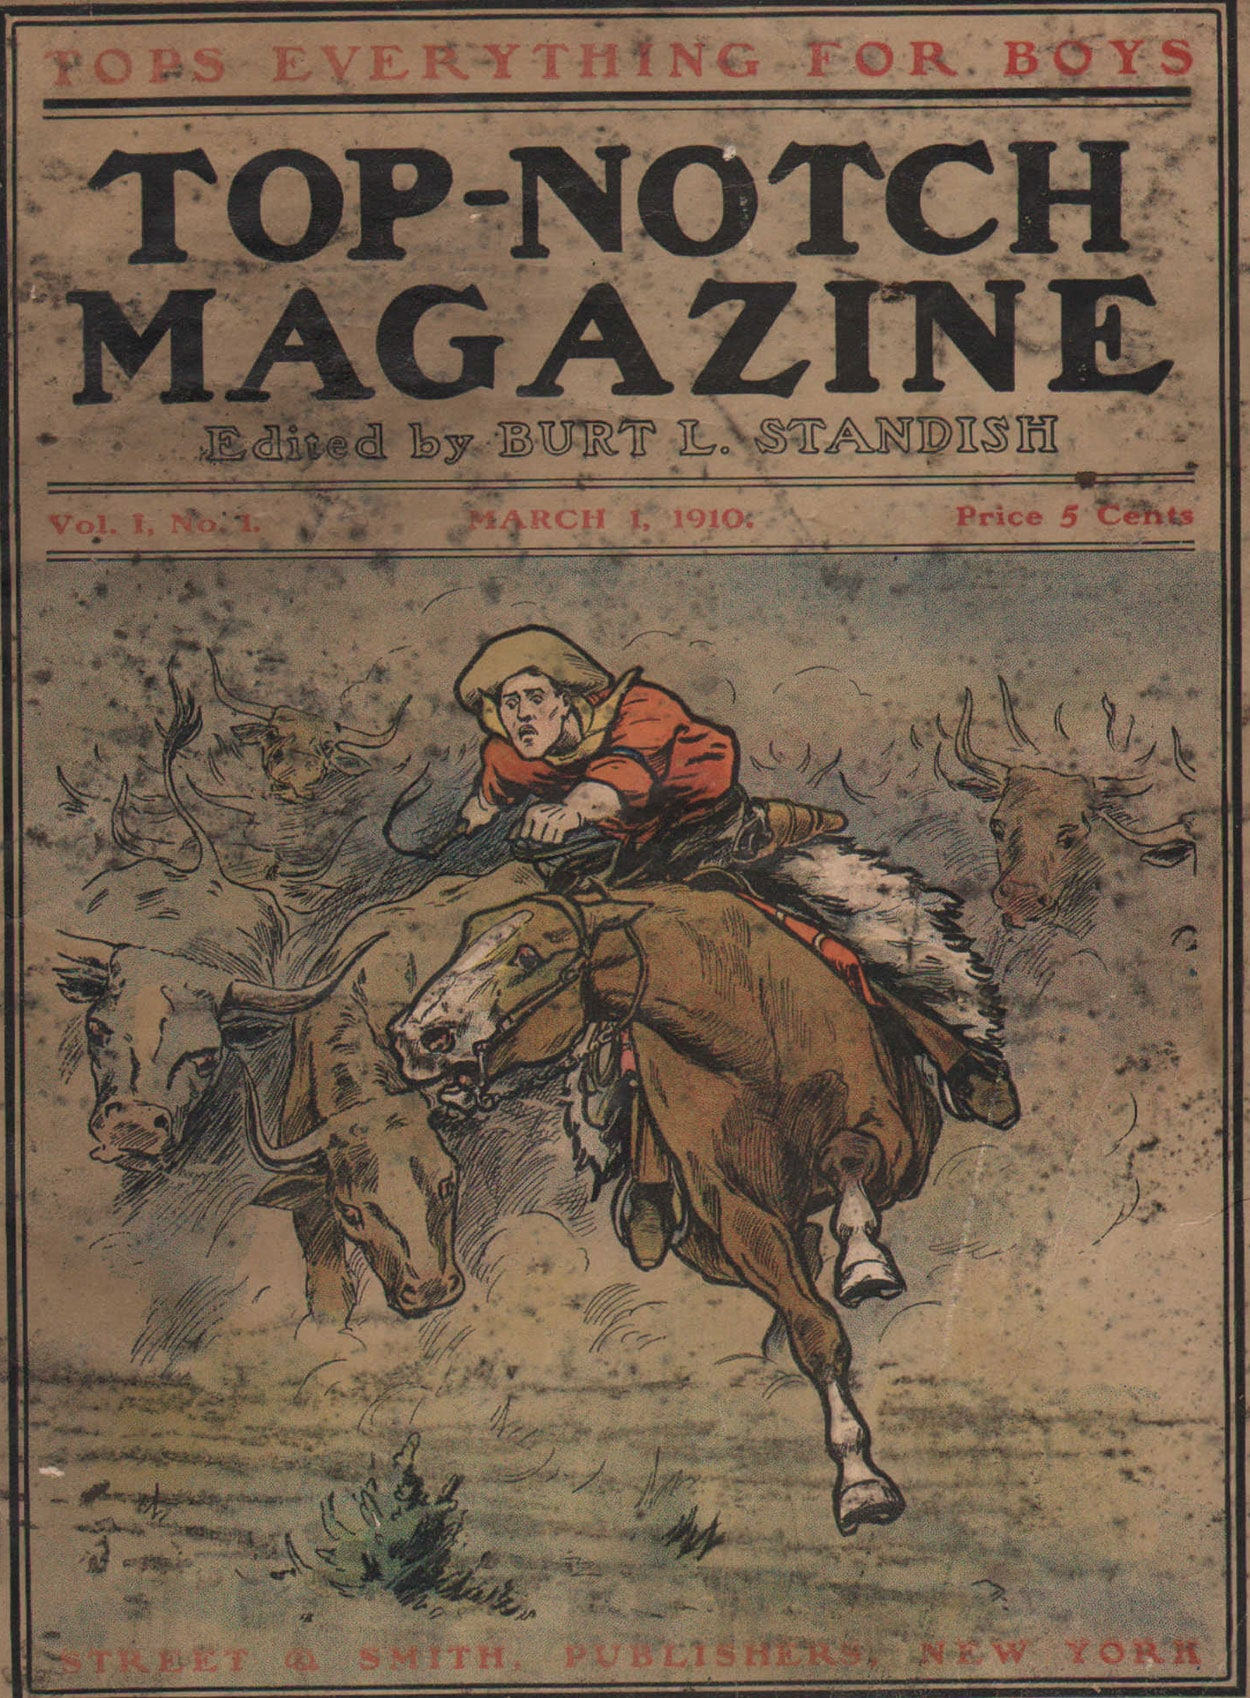 Top-Notch Magazine - April 15, 1924 - Pulp Magazine